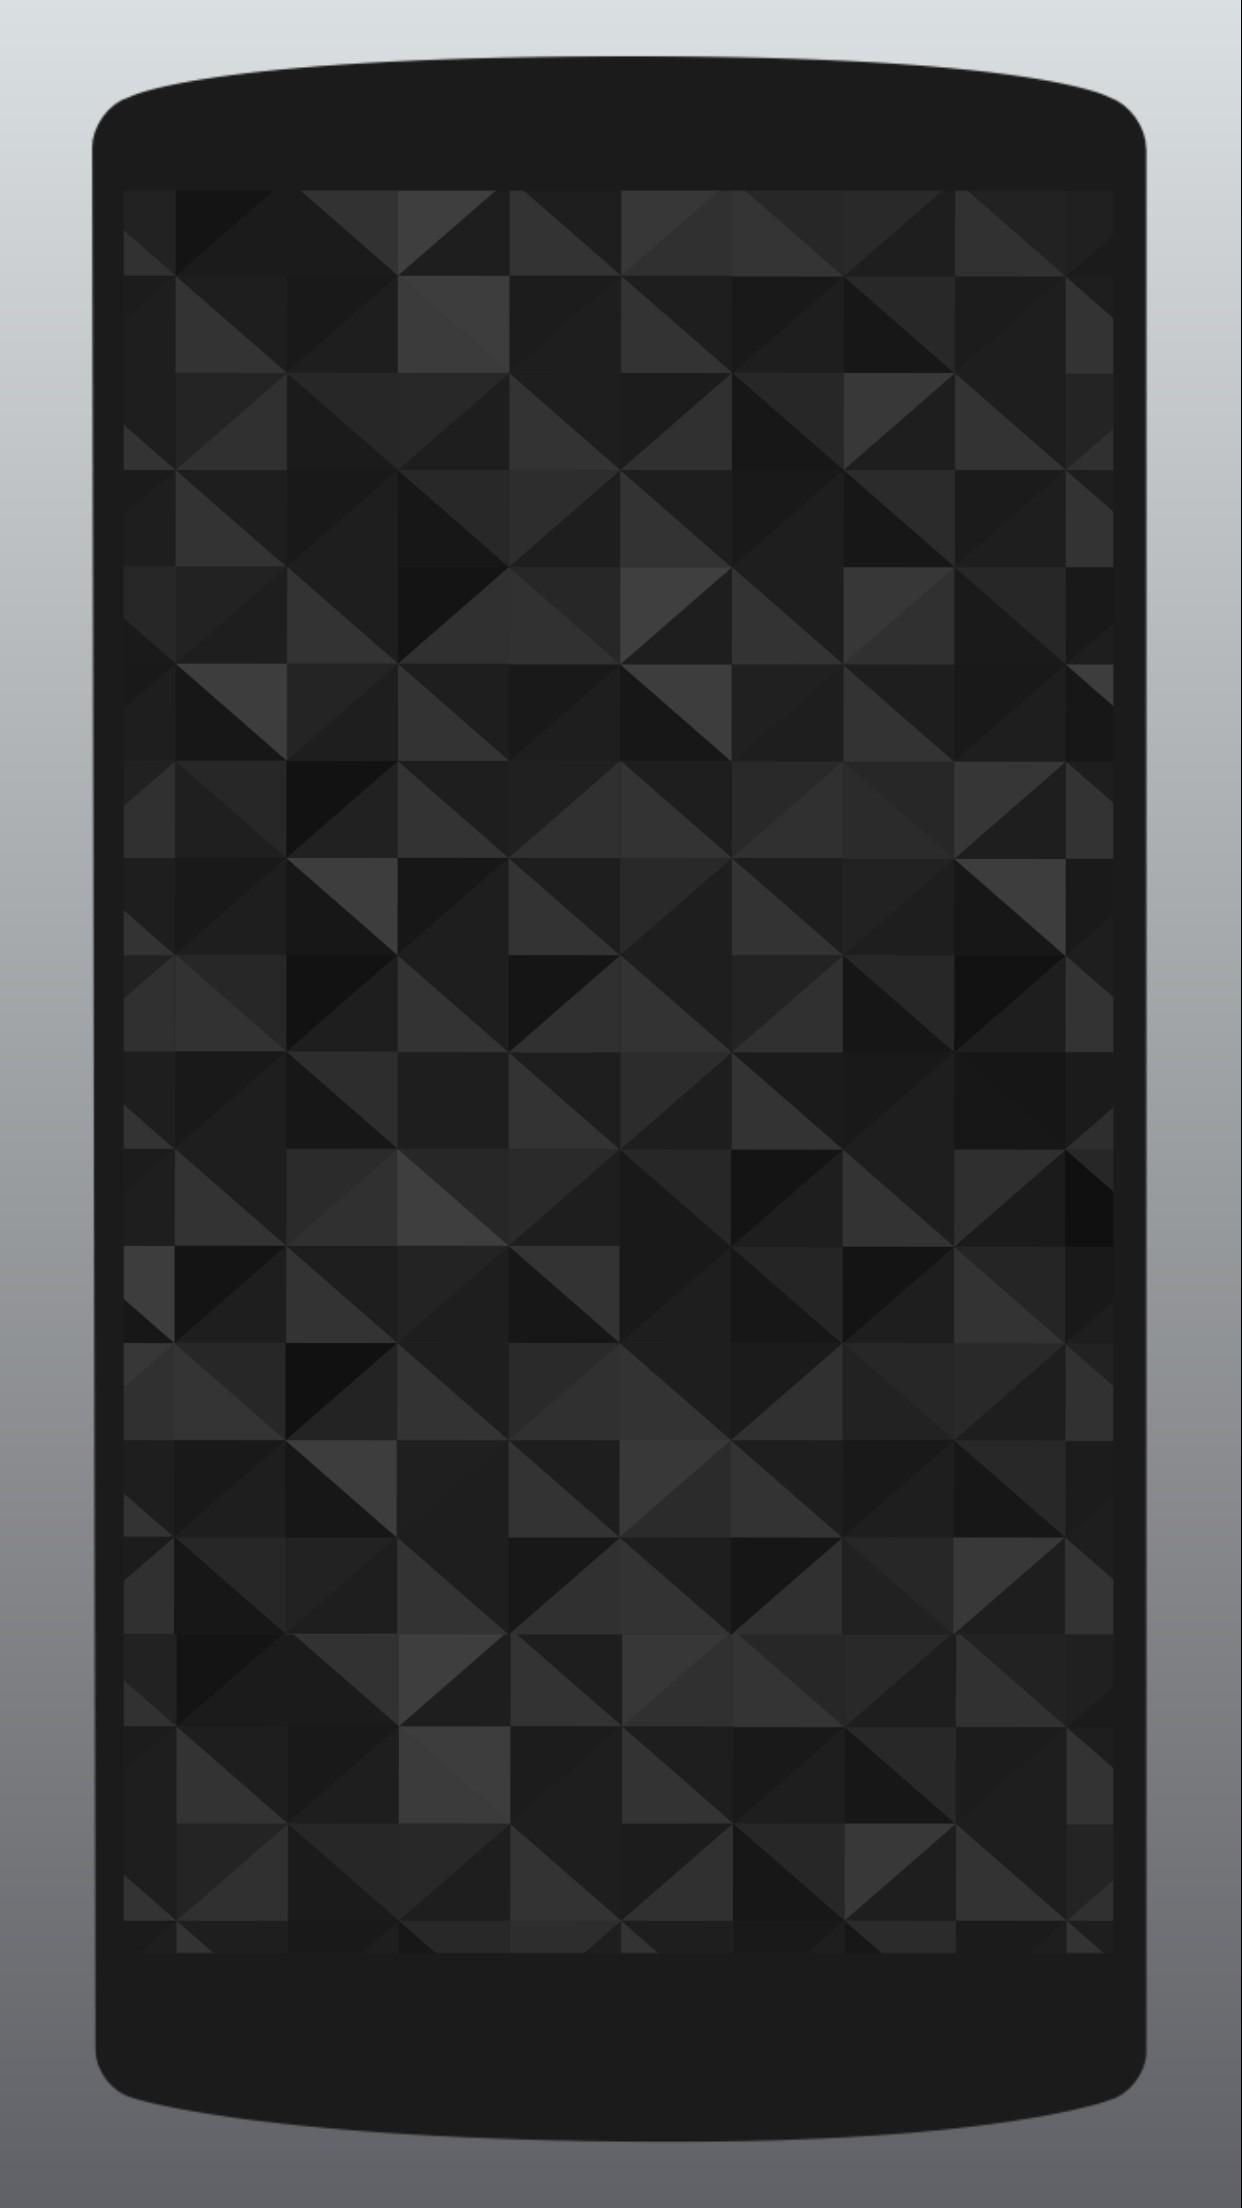 Grey Aesthetic Wallpaper Hd 4k For Android Apk Download